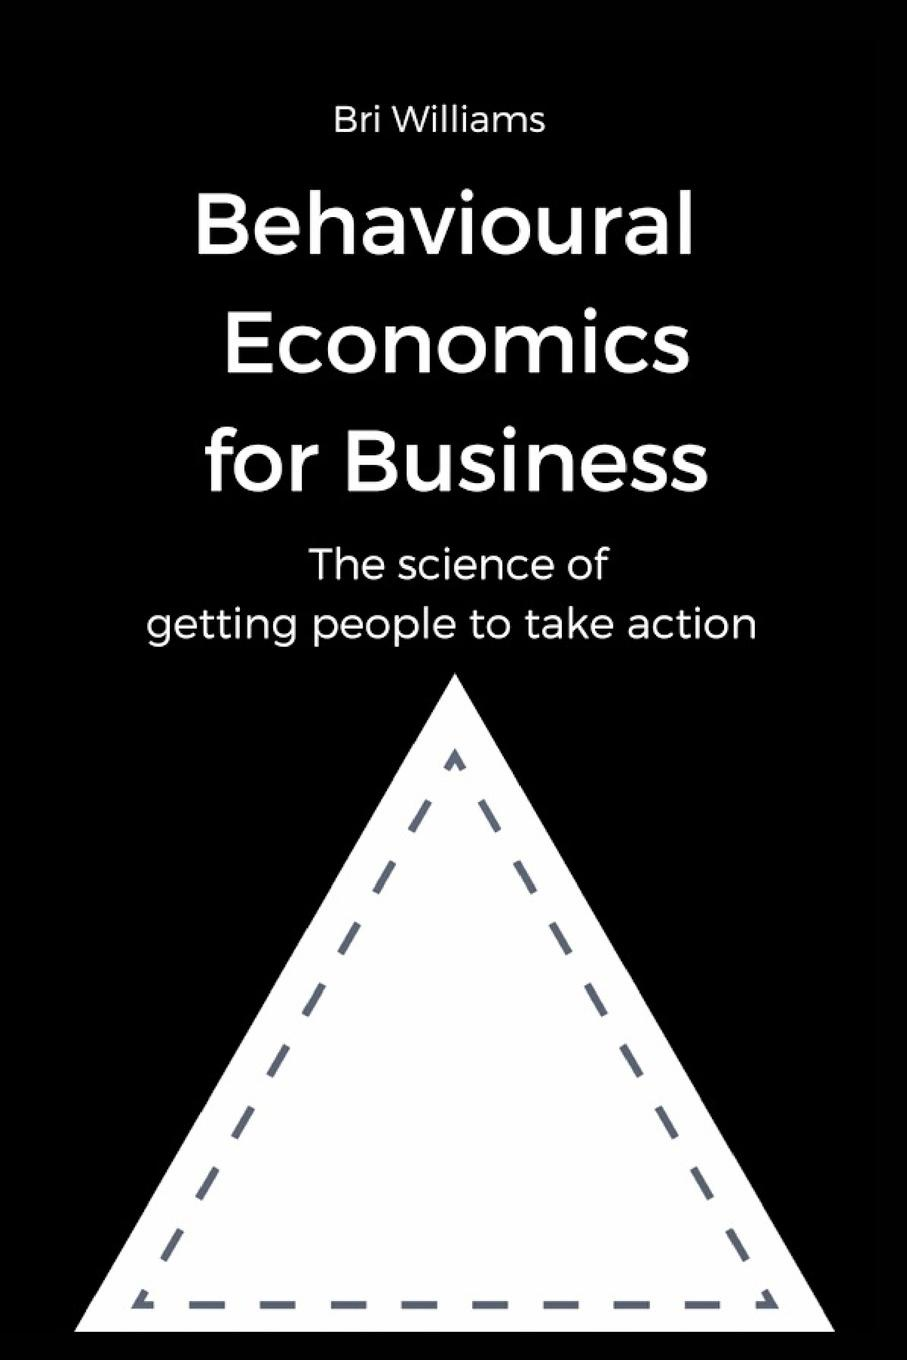 Bri Williams Behavioural Economics for Business dave ulrich why the bottom line isn t how to build value through people and organization